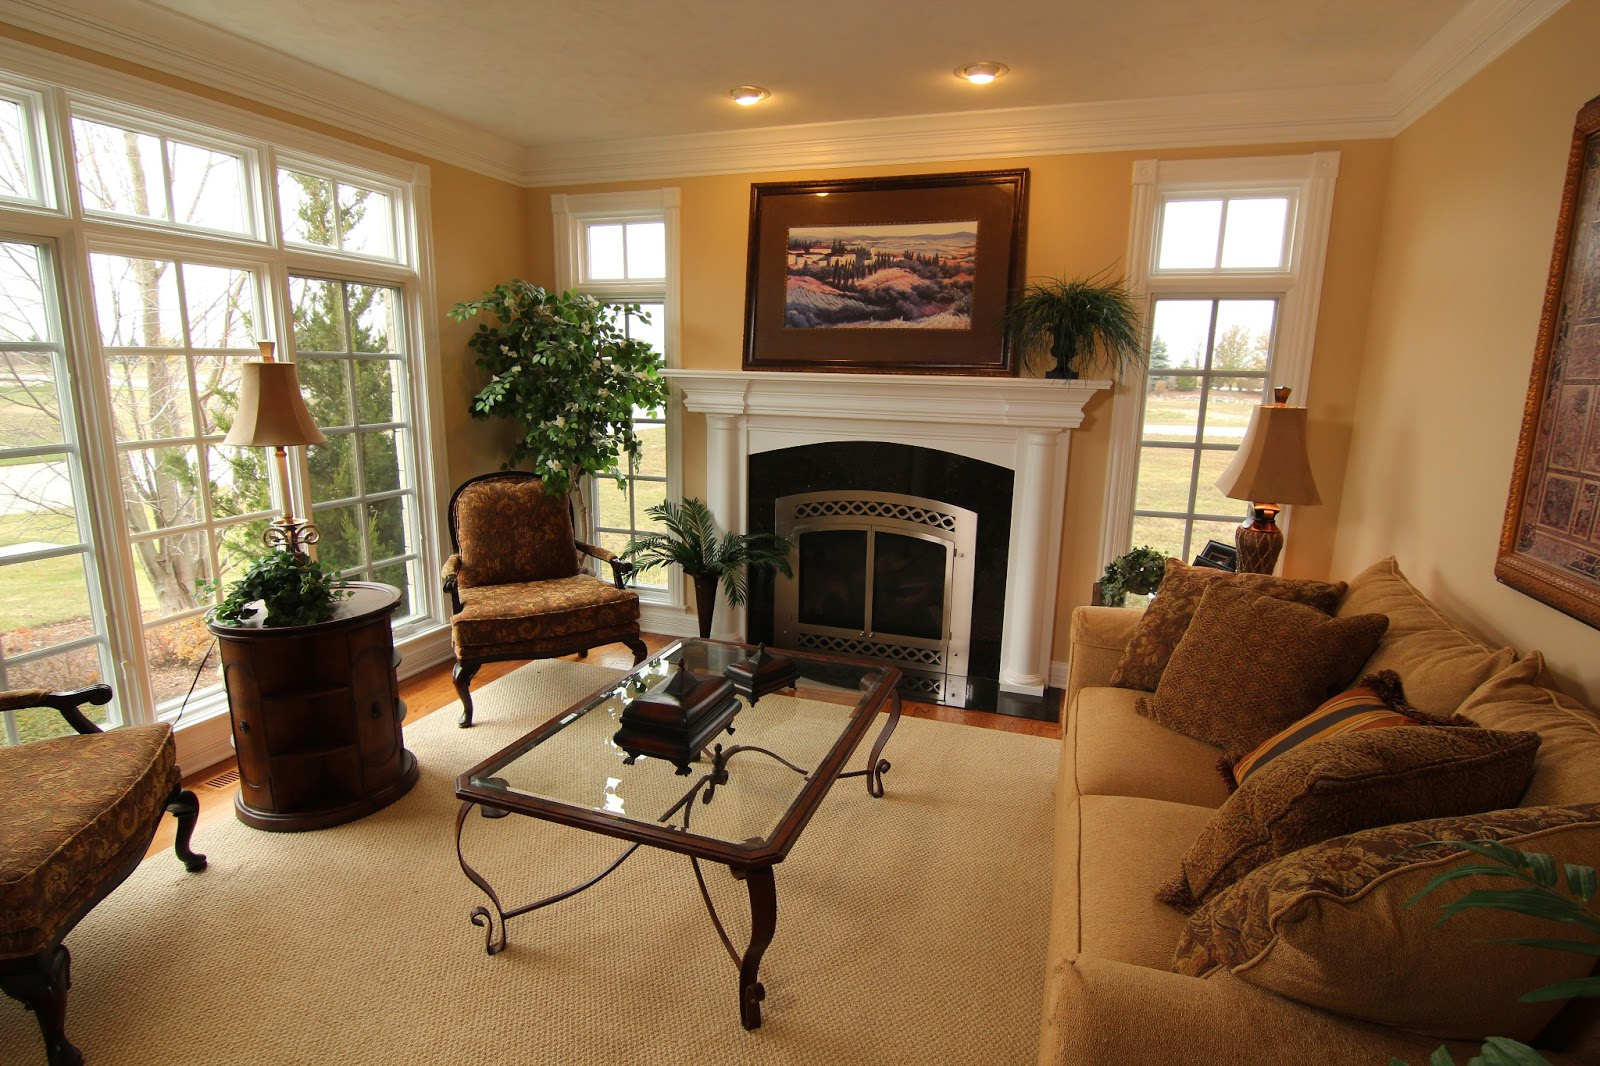 Cozy fireplace decor tips for keeping warm in style for Family room v living room